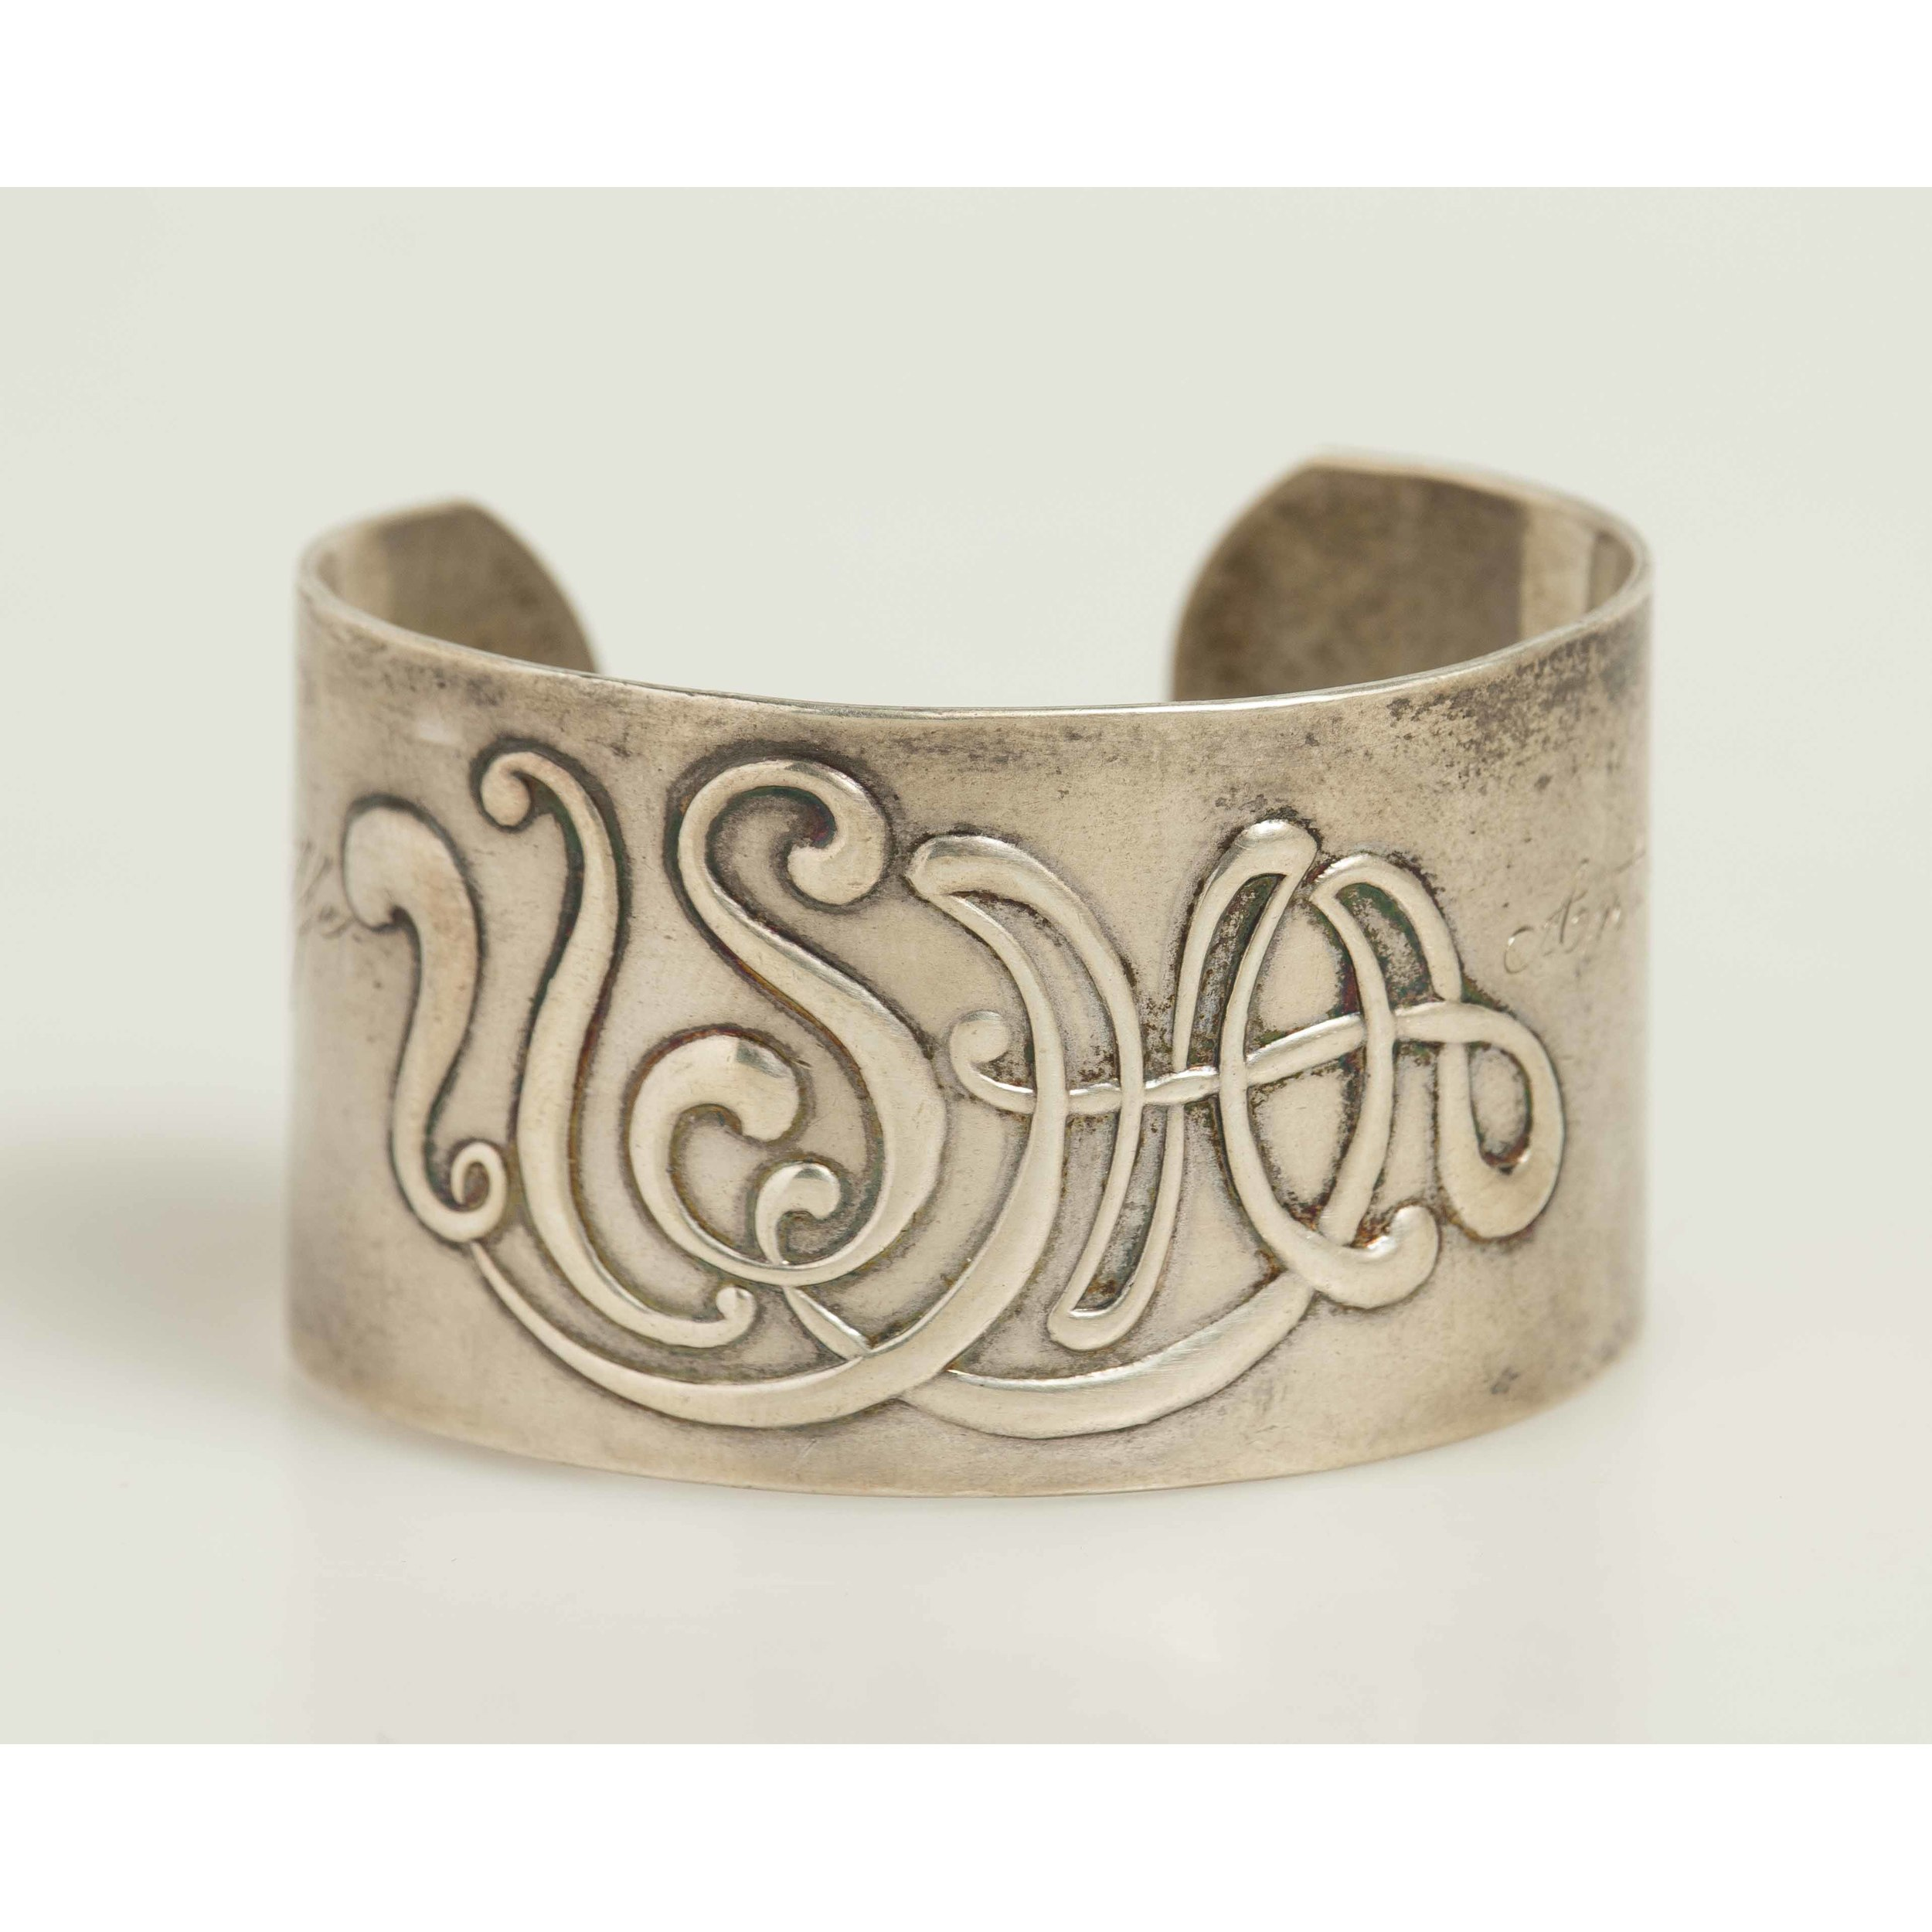 General Anthony McAuliffe Dieges \u0026 Clust Sterling Cuff Bracelet